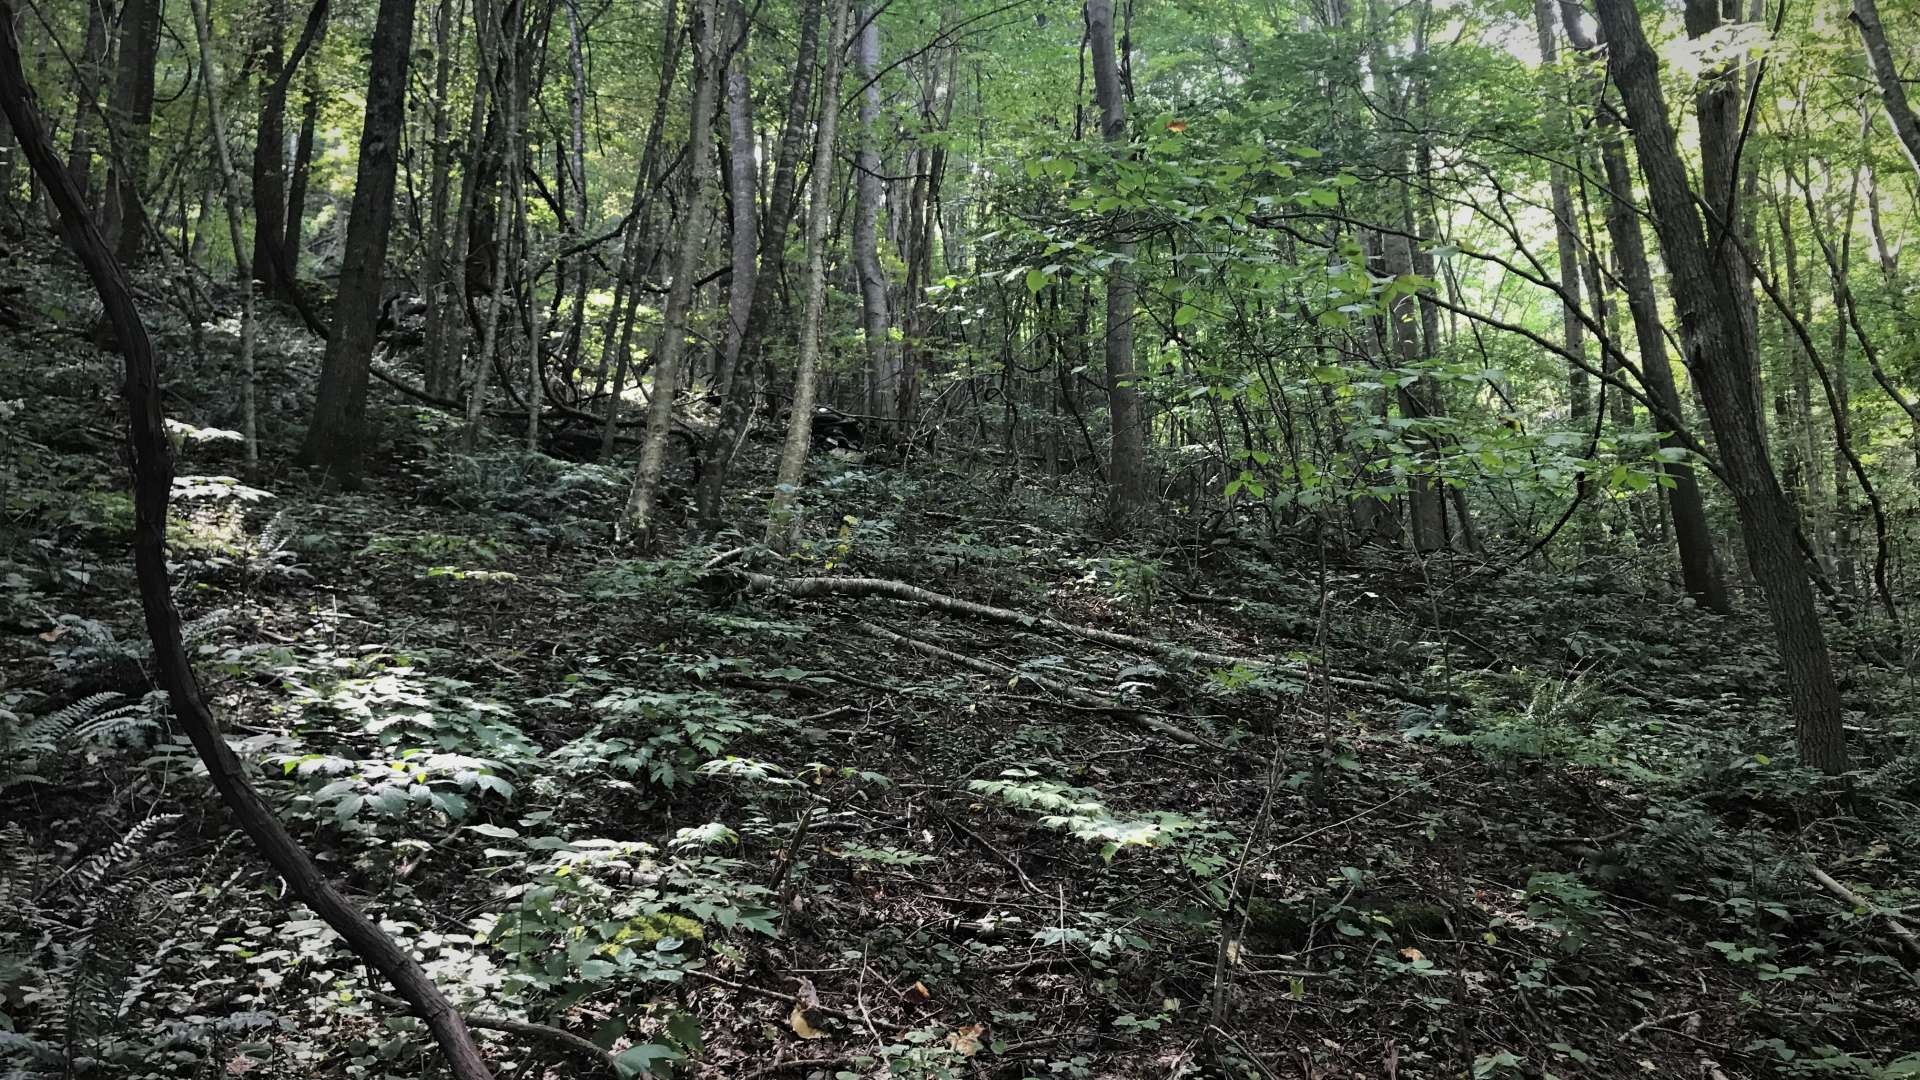 Totally wooded, this tract offers a diverse mixture of hardwoods, evergreens, and mountain foliage.  This tract is also home to a variety of wildlife including whitetail deer, turkey, and bears.